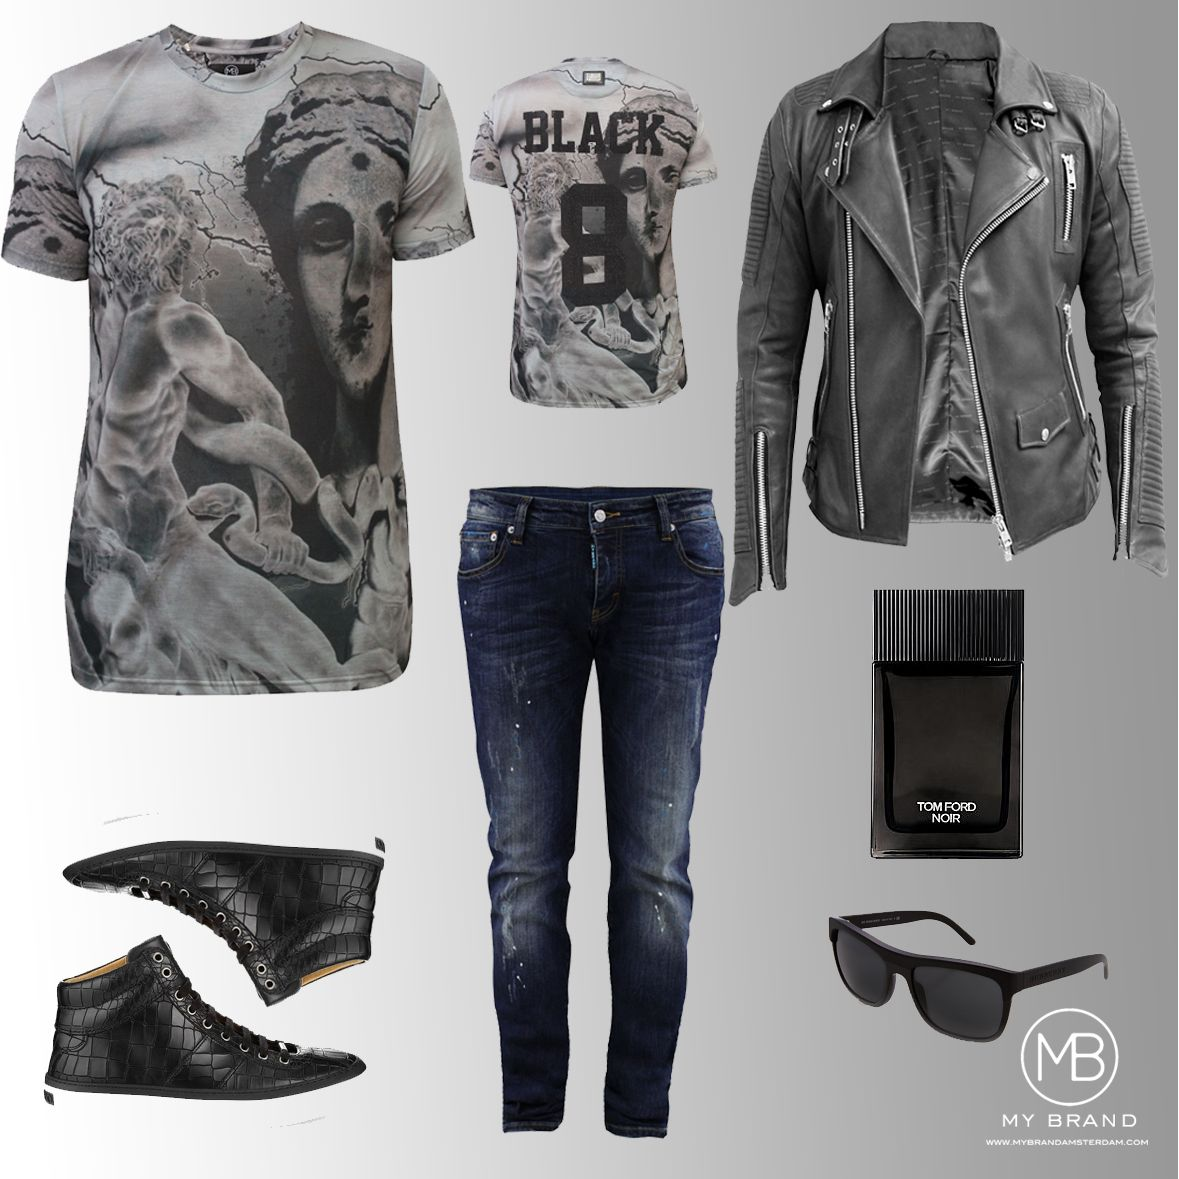 This weeks oufit and this time for our male fans. This outfit contains Black 8 all over Tee, our dark blue inked skinny jeans, and the Lambskin leather biker jacket in Black. Yay of Nay?